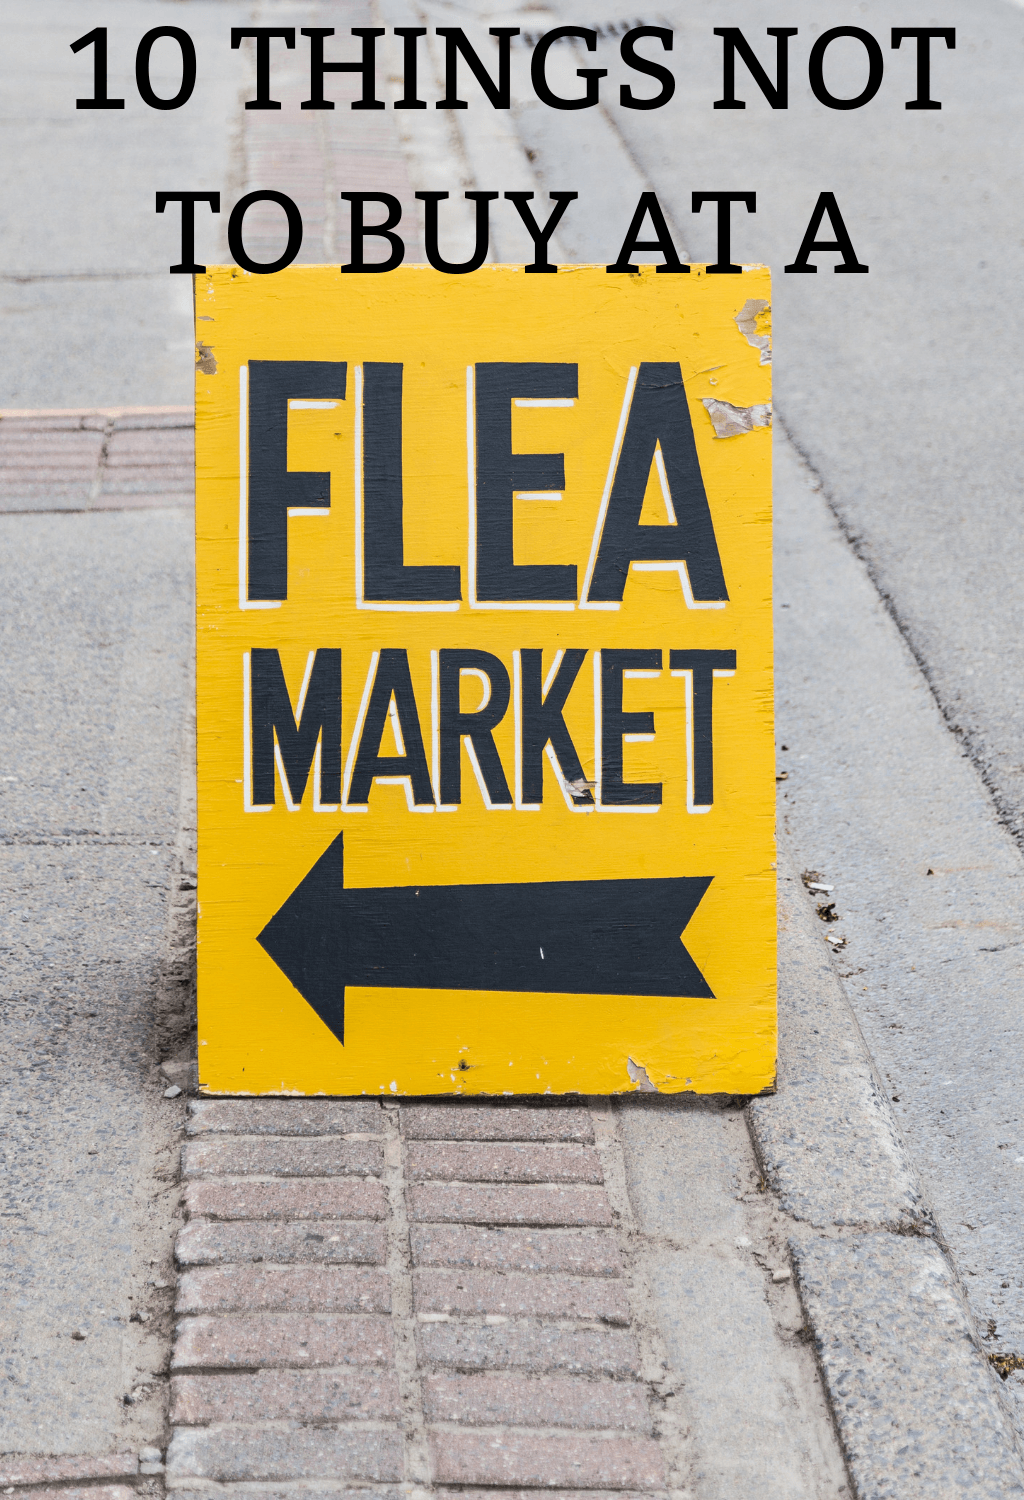 There are many things that are great bought from a flea market, though. But here are ten things not to buy from a flea market.